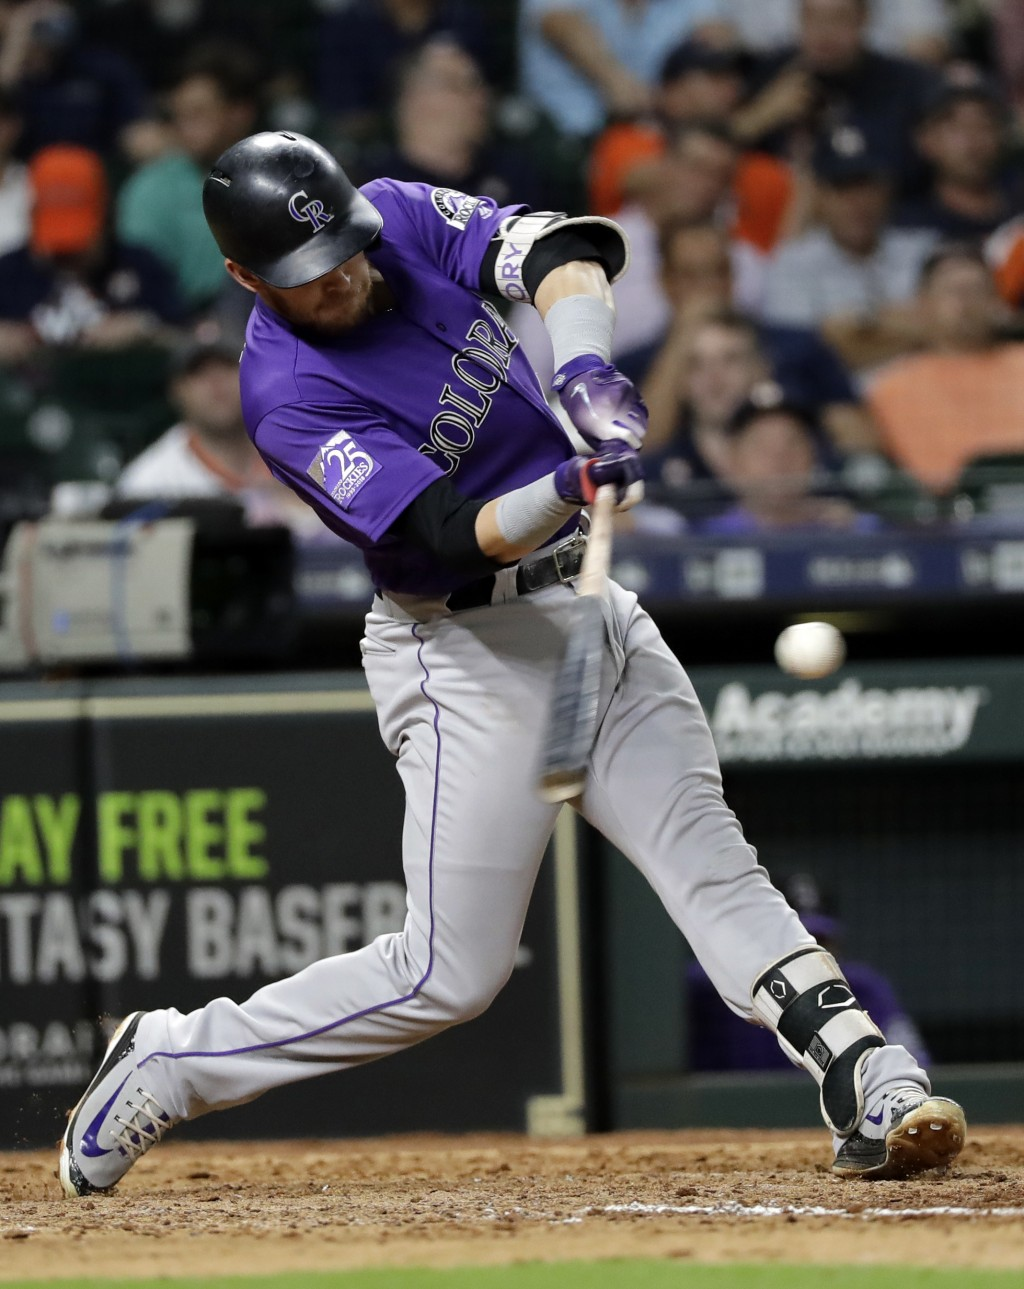 Colorado Rockies' Trevor Story hits a home run against the Houston Astros during the eighth inning of a baseball game Tuesday, Aug. 14, 2018, in Houst...